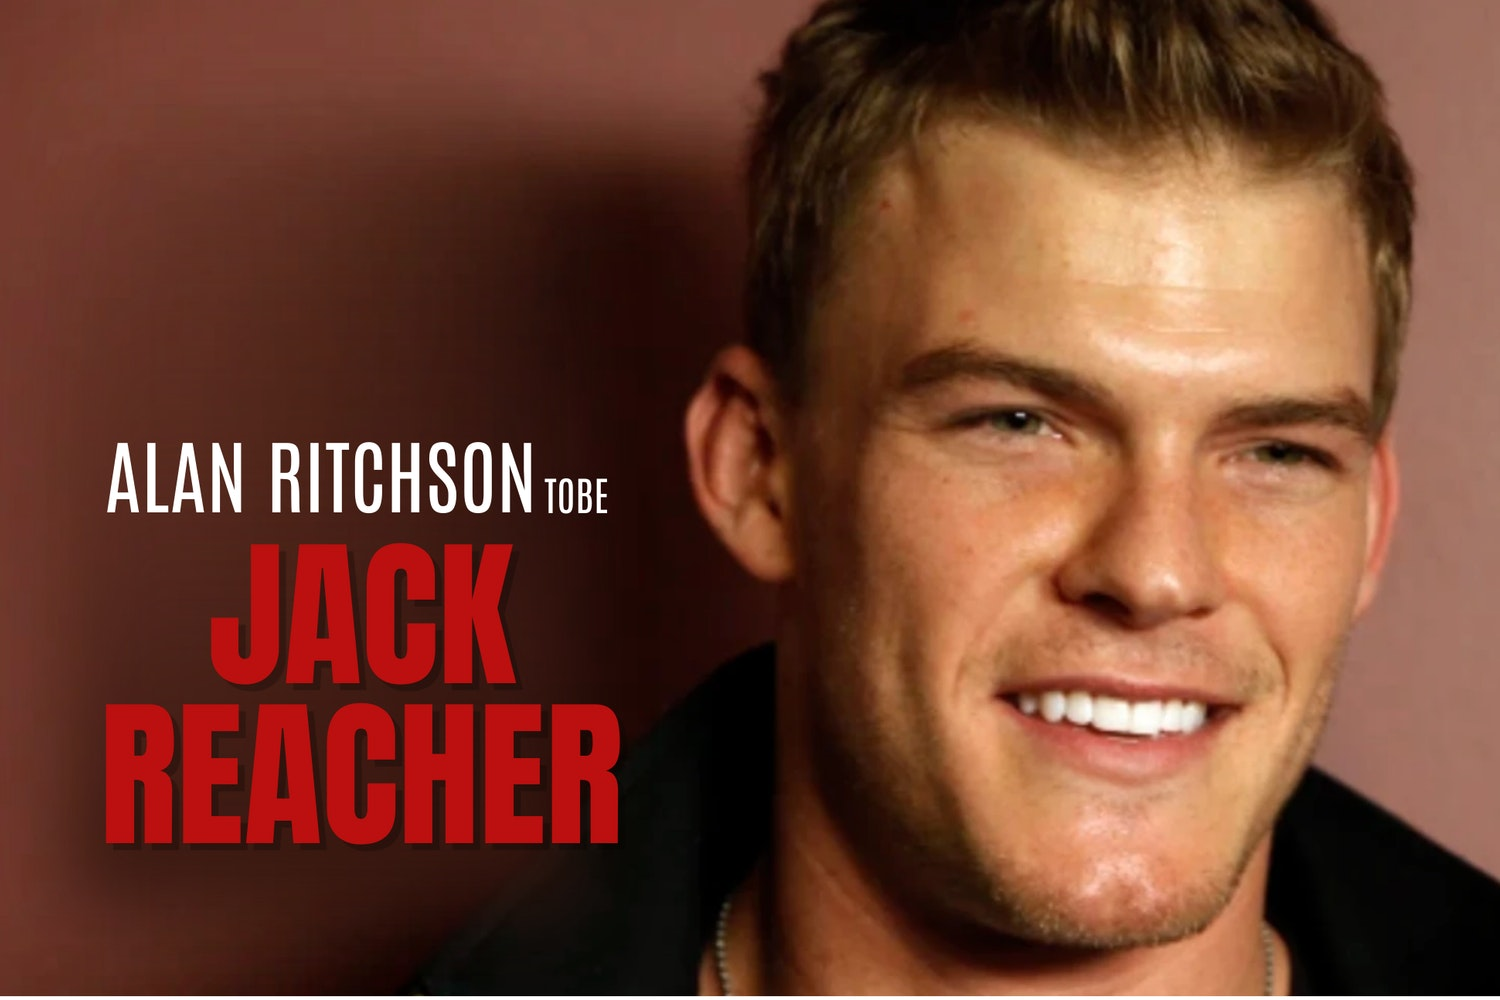 Cover Image for Alan Ritchson Cast as Lead in Amazon TV Series 'Jack Reacher'